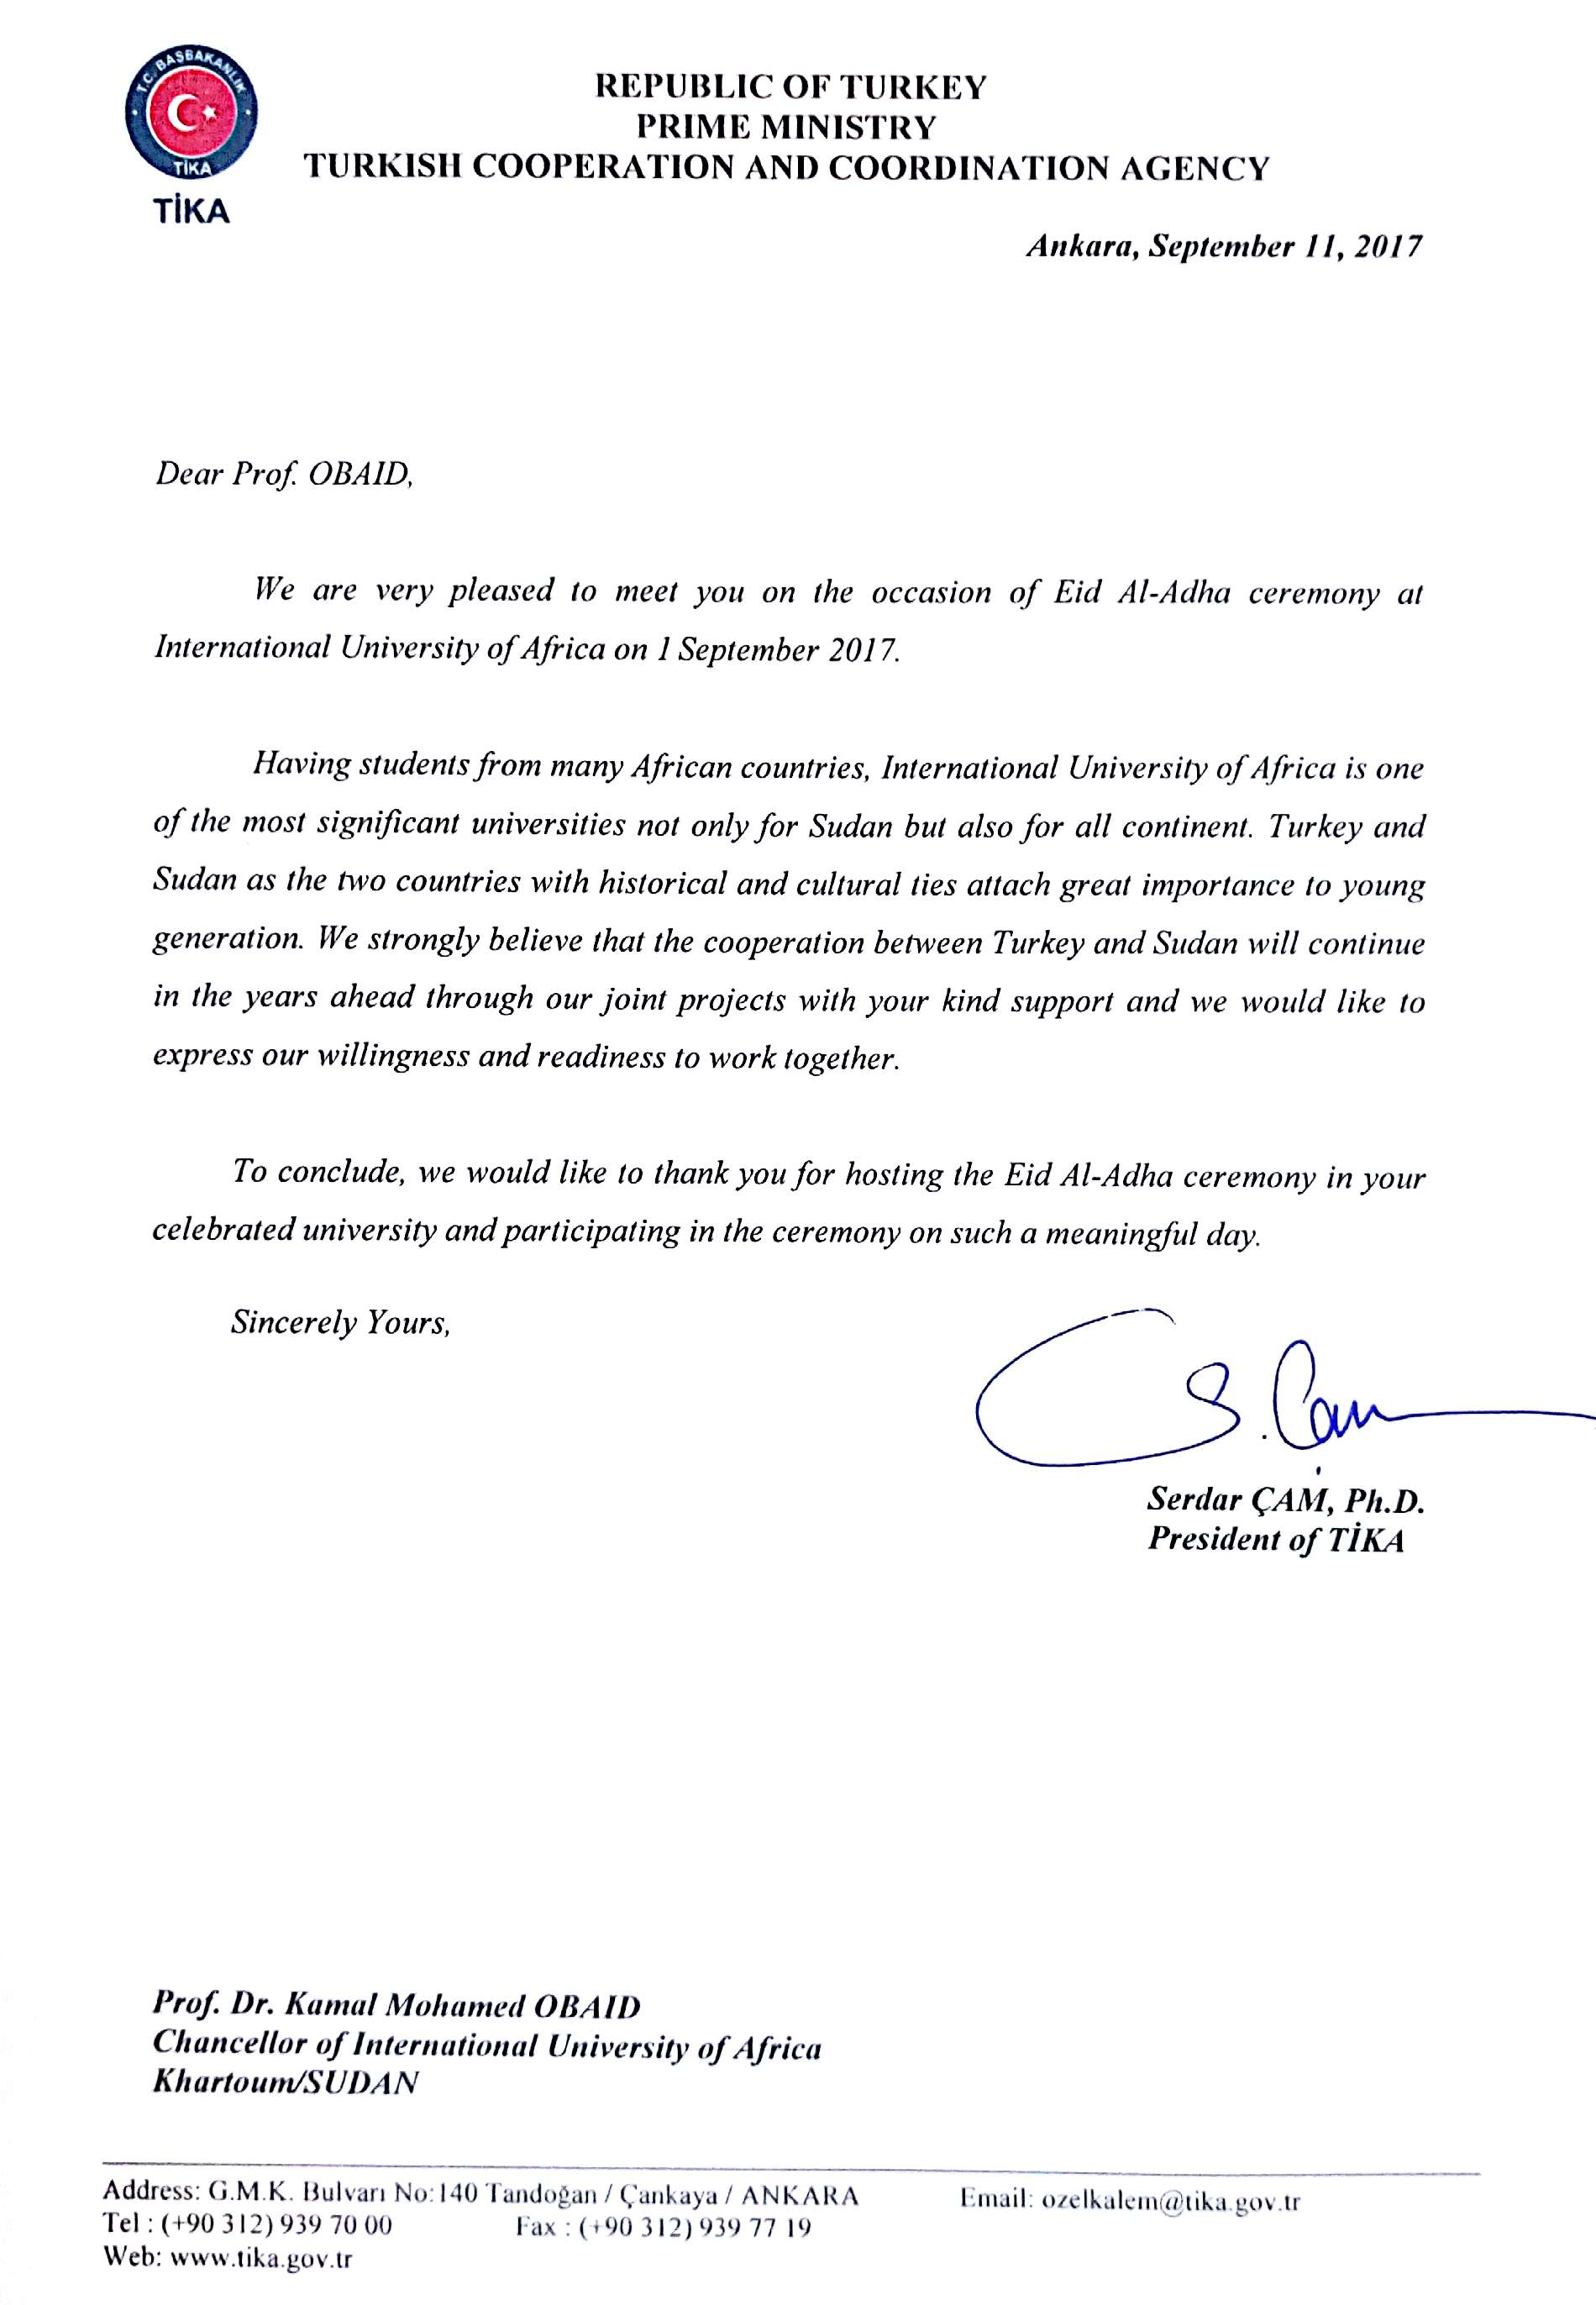 the-vice-chancellor-of-the-university-receives-a-letter-of-thanks-from-the-turkish-cooperation-and-coordination-agency